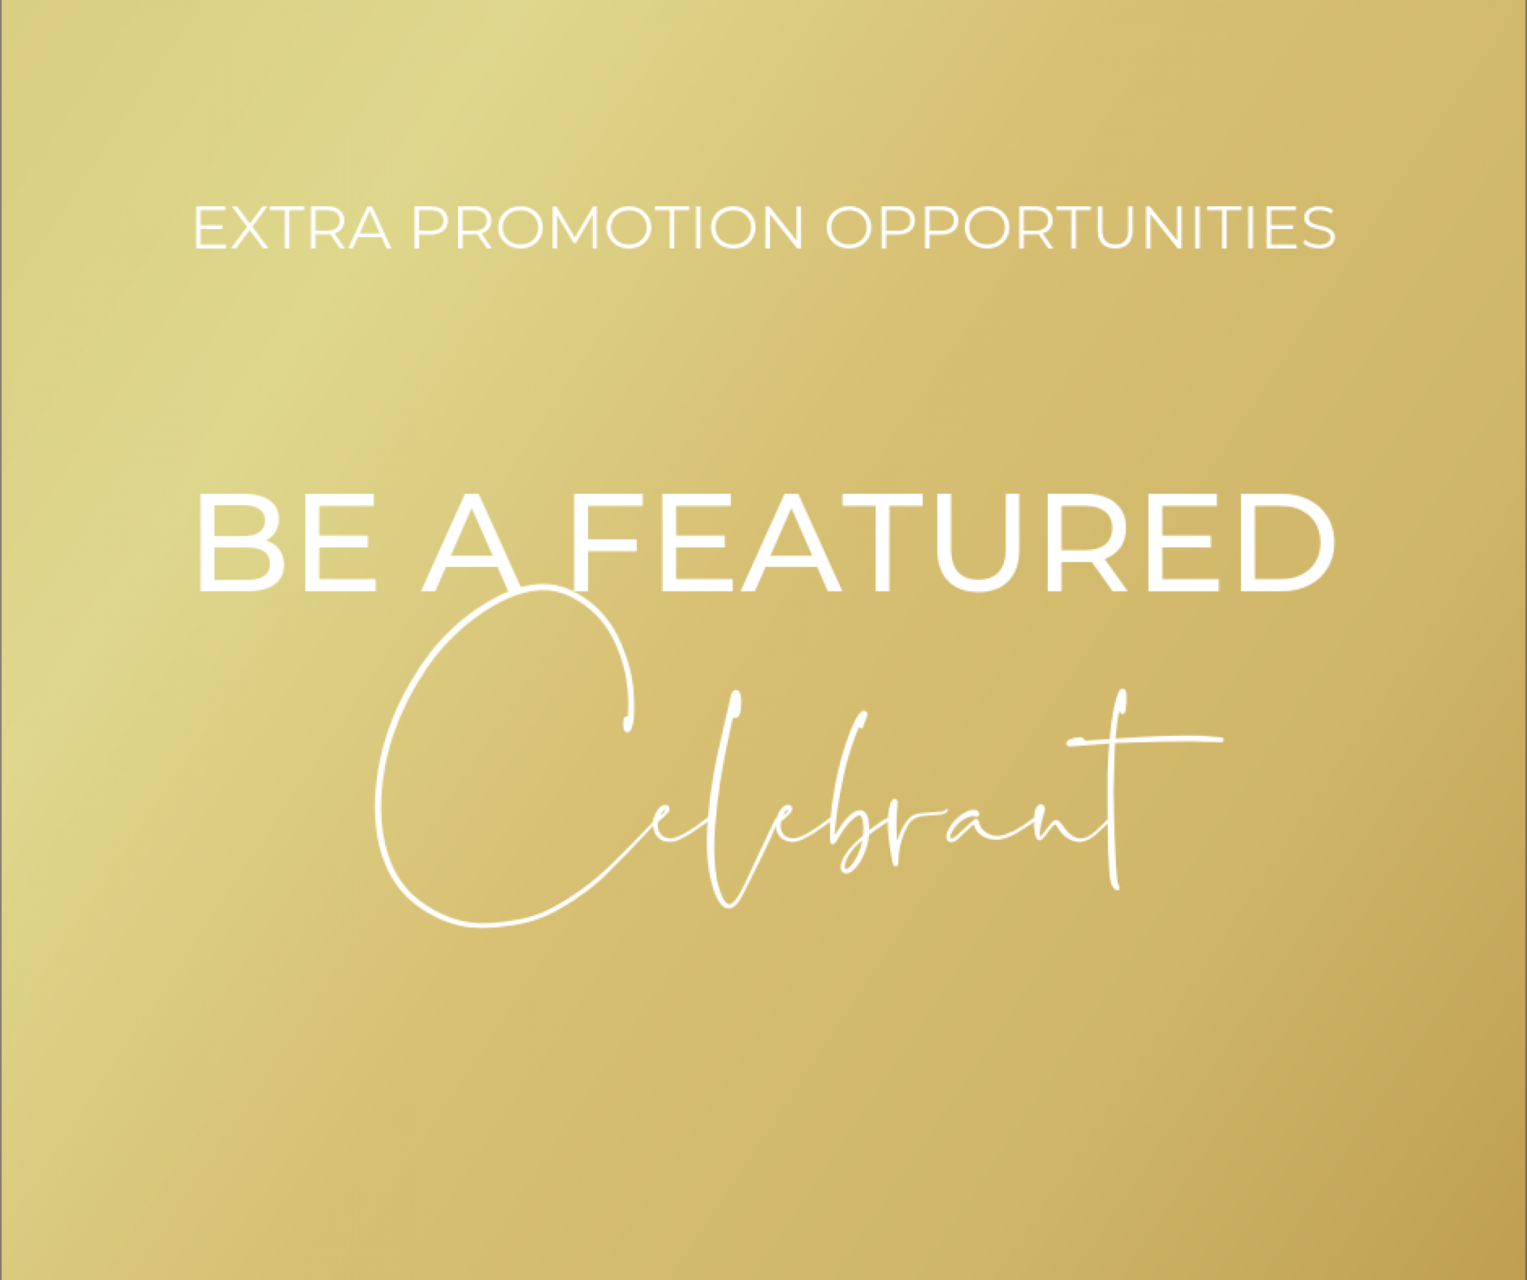 Become a Featured Celebrant